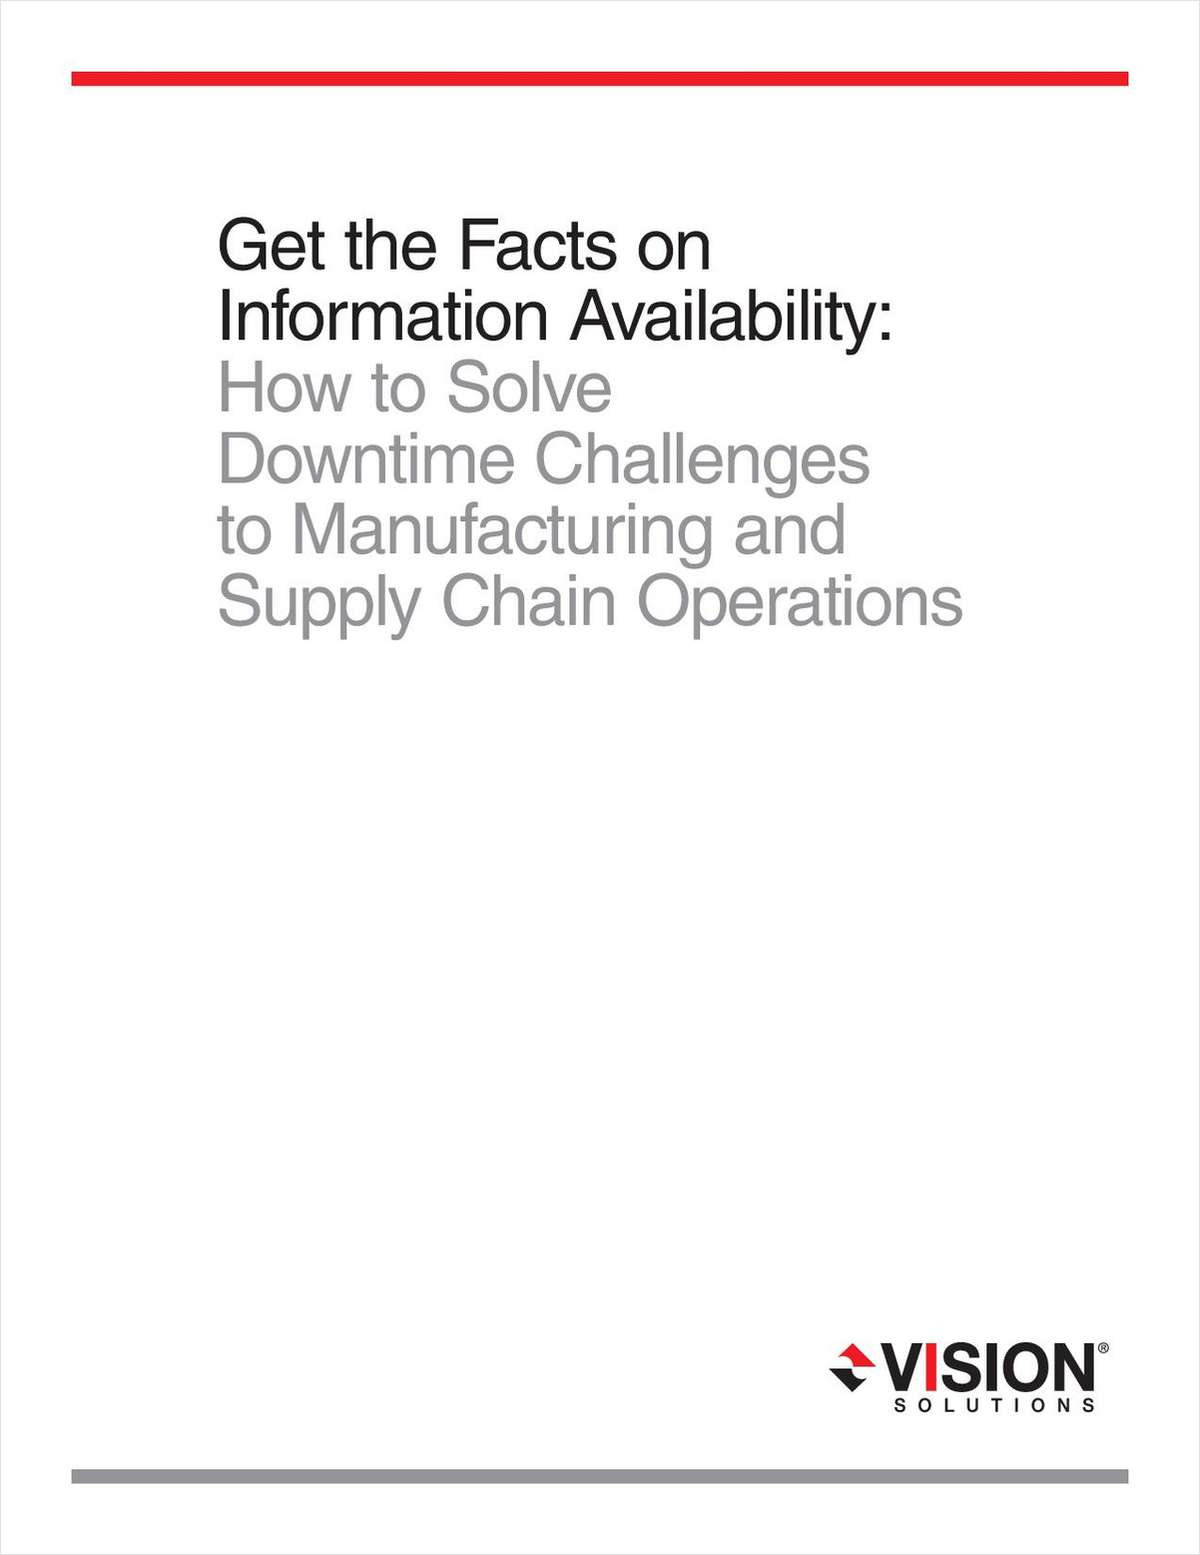 Get the Facts on How AIX and System I /Unix Platform Users Solve Downtime Challenges to Manufacturing and Supply Chain Operations